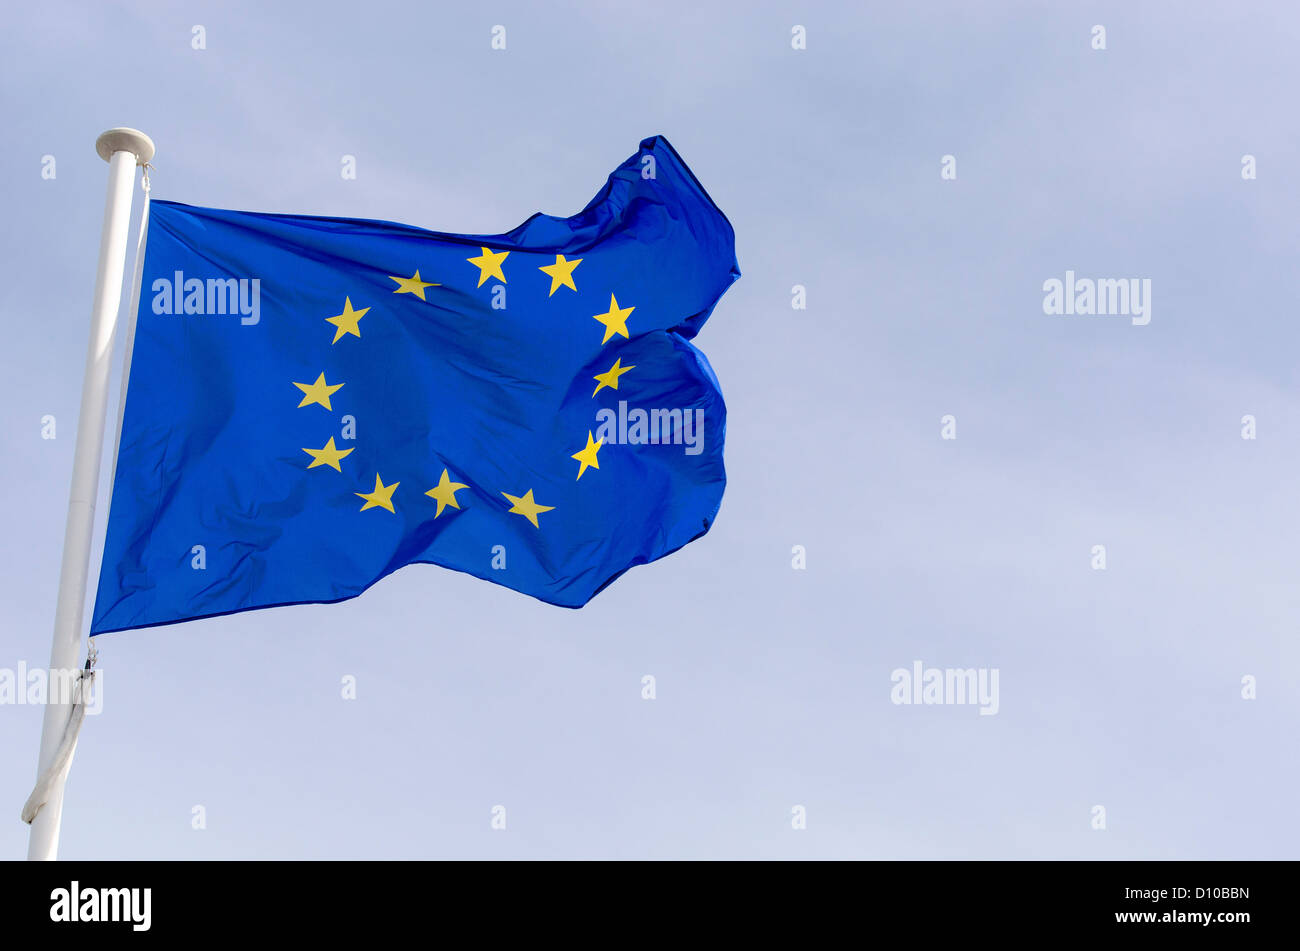 European Union flag flying in the wind in sky a slightly cloudy. - Stock Image